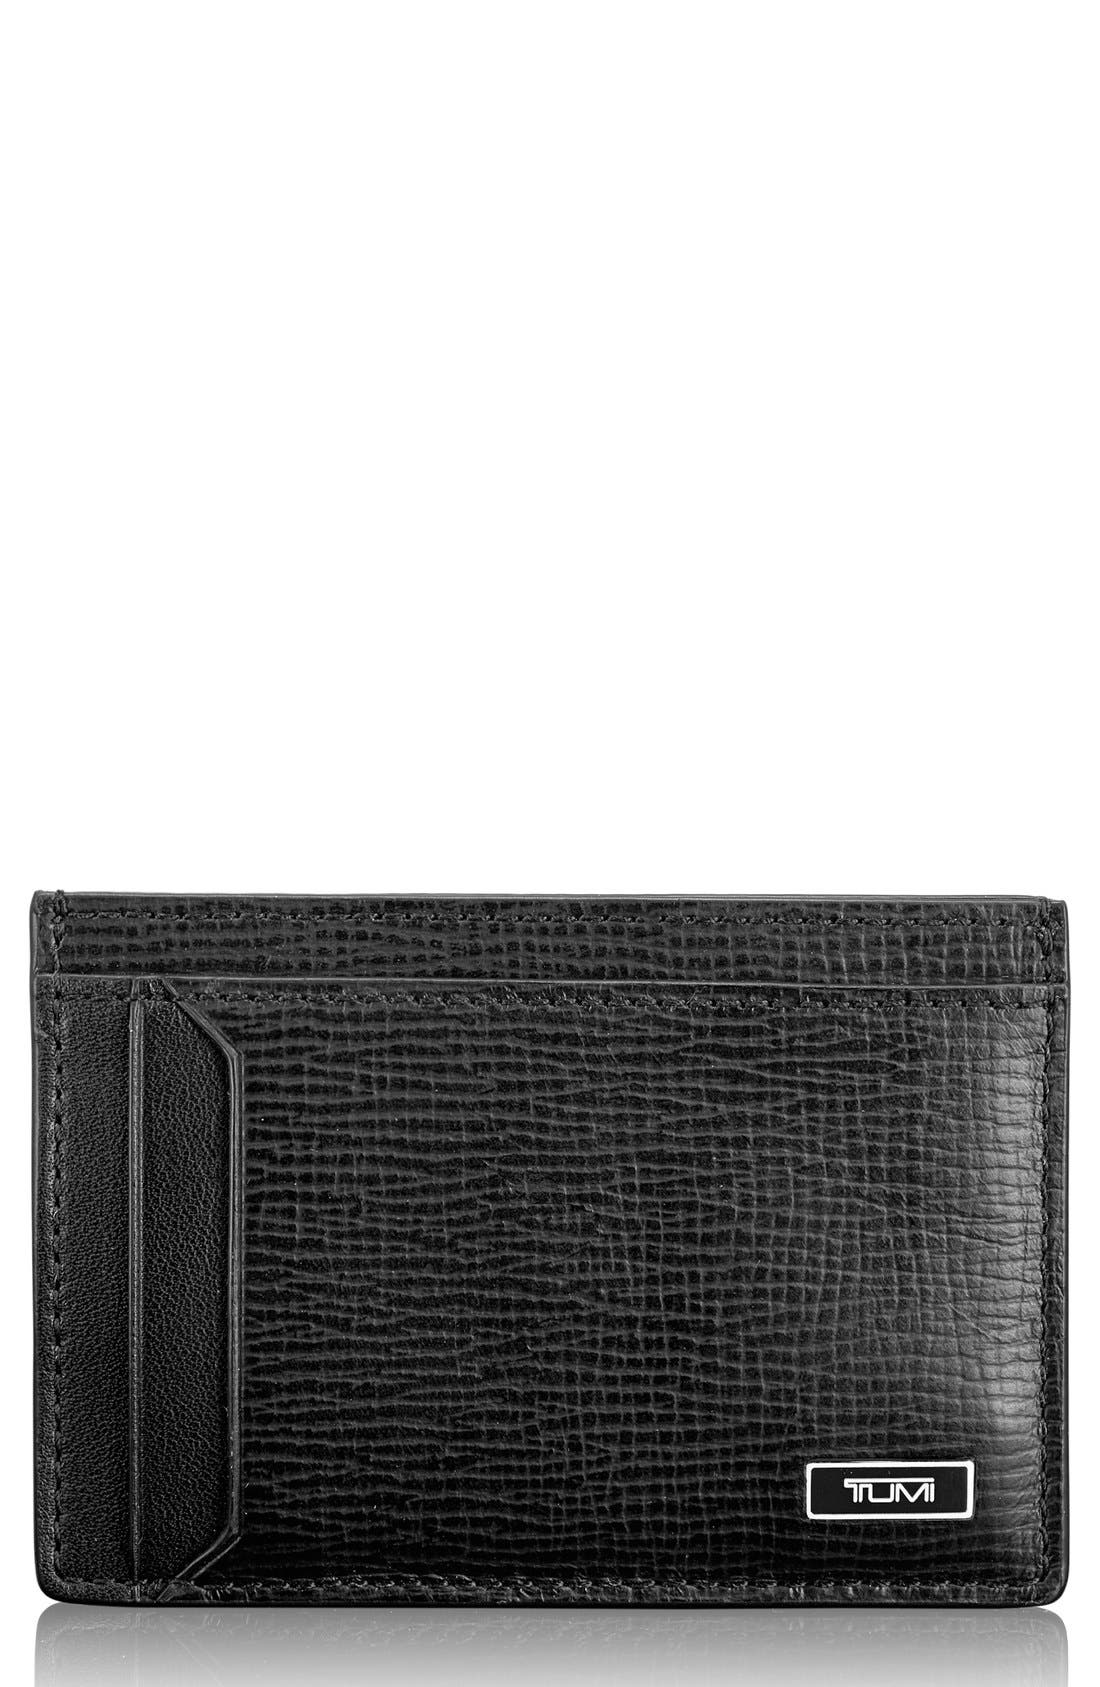 Tumi 'Monaco' Leather Money Clip Card Case